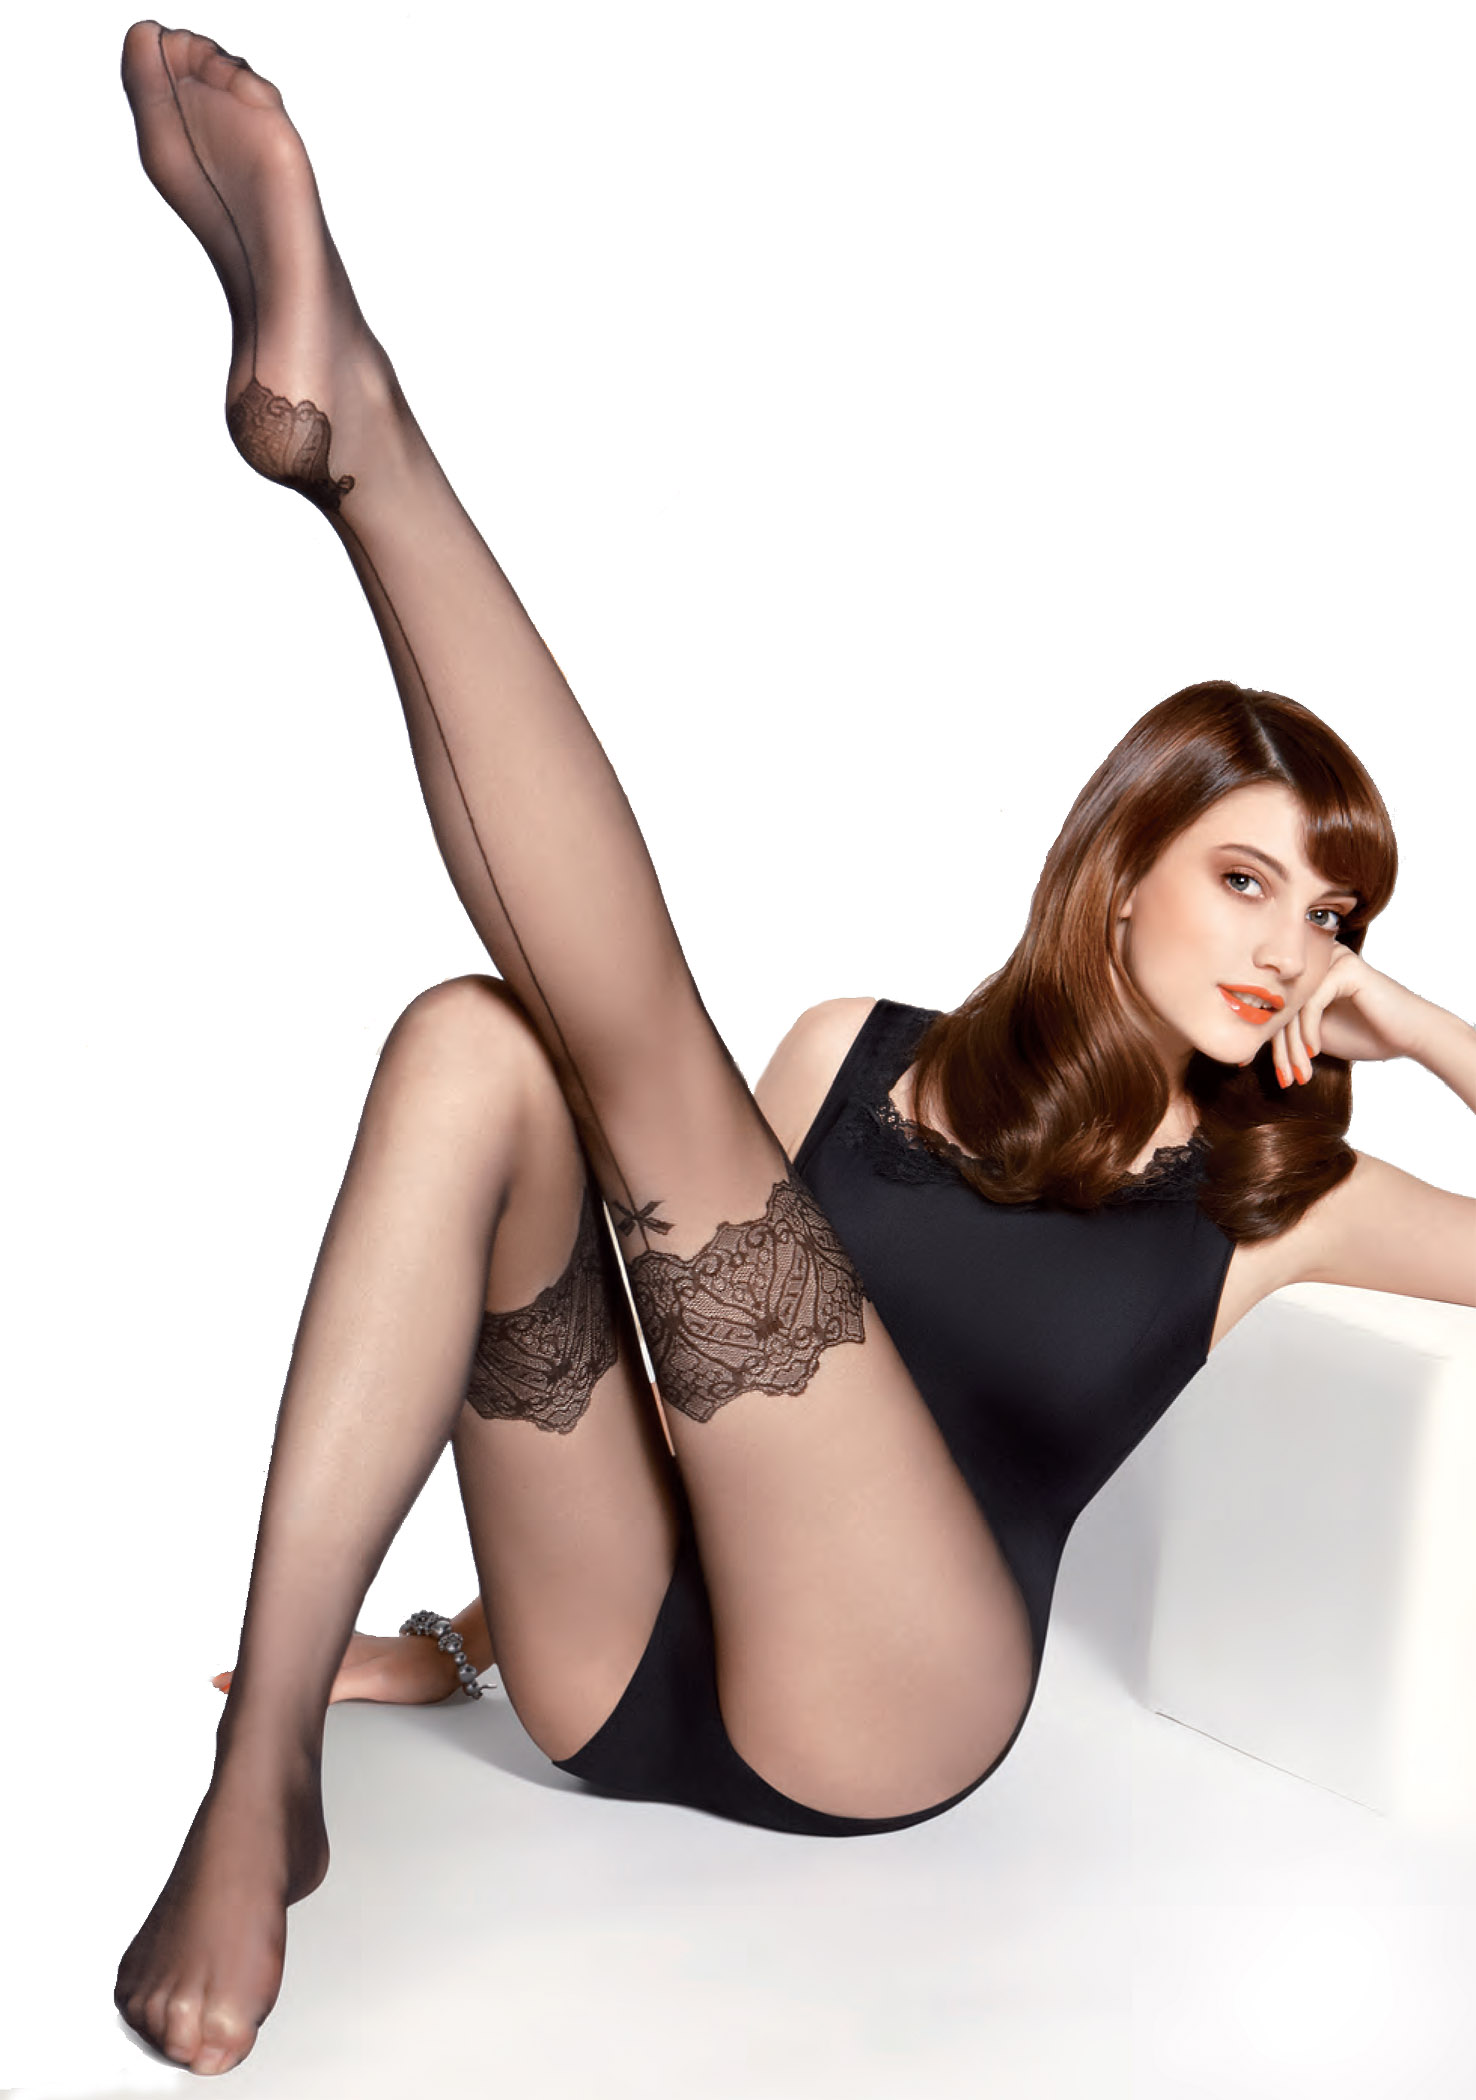 Softcore pantyhose fetish can be